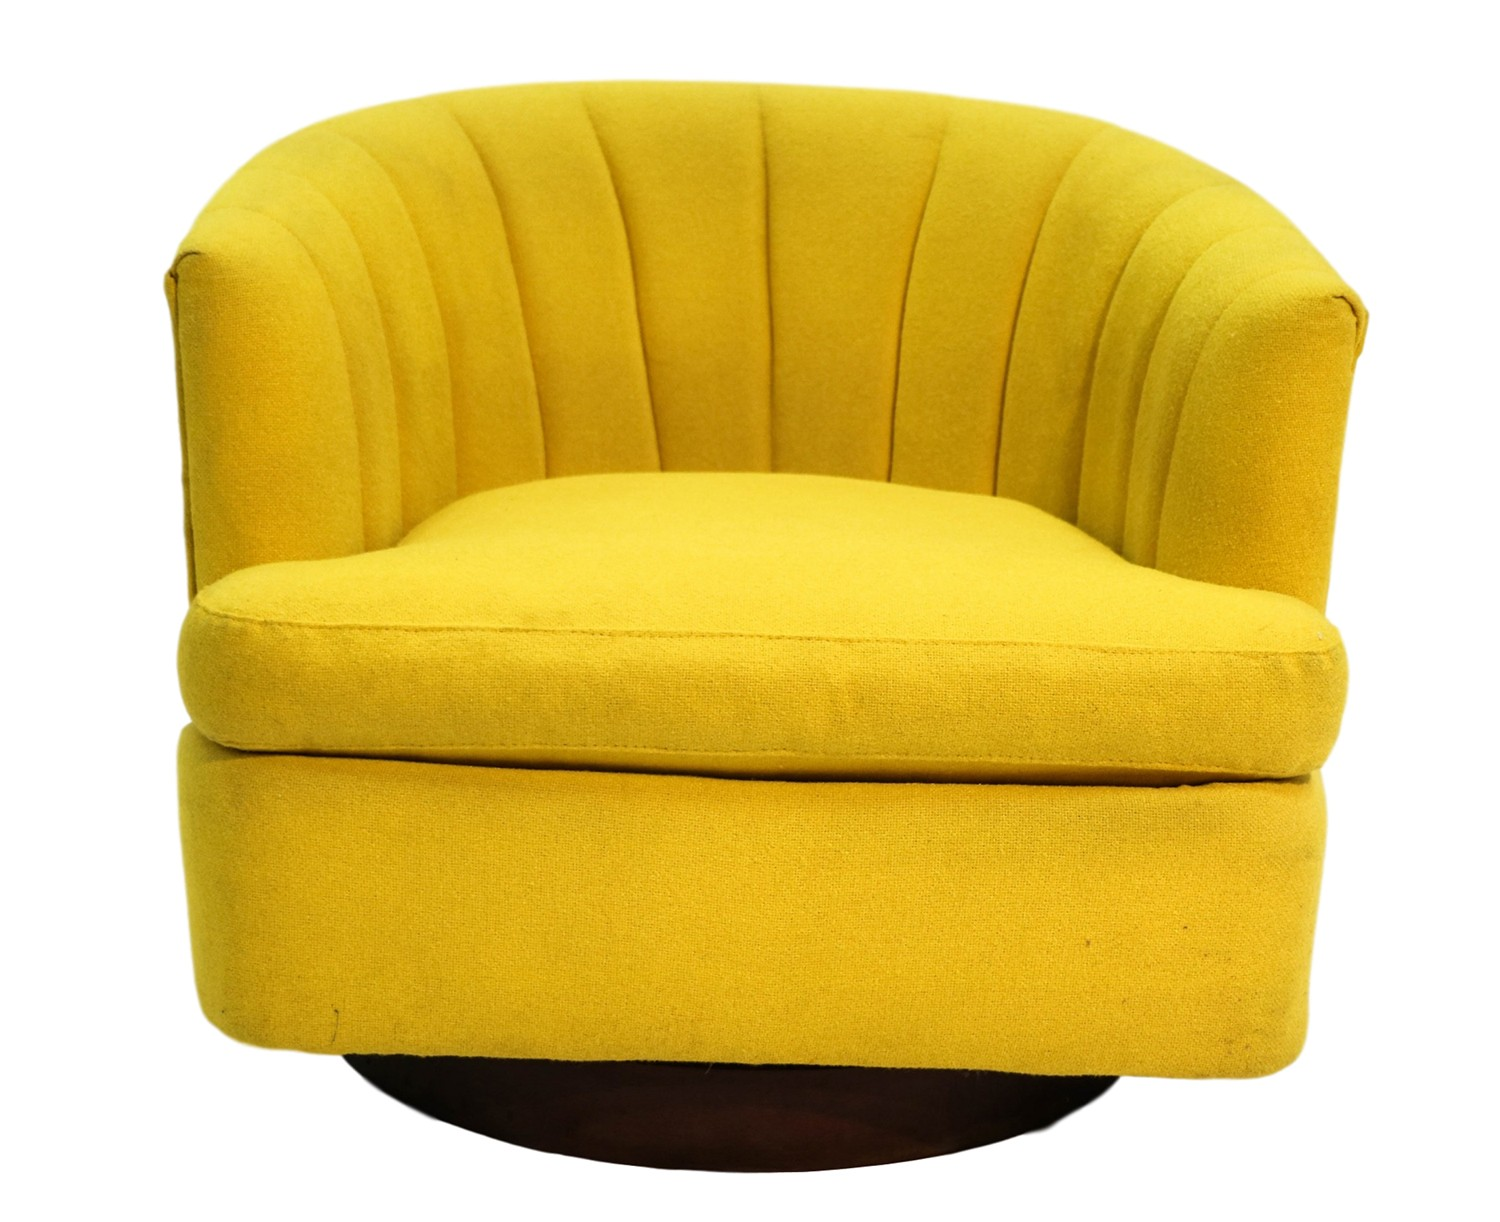 MidCentury Yellow Swivel Tub Chair Milo Baughman Style